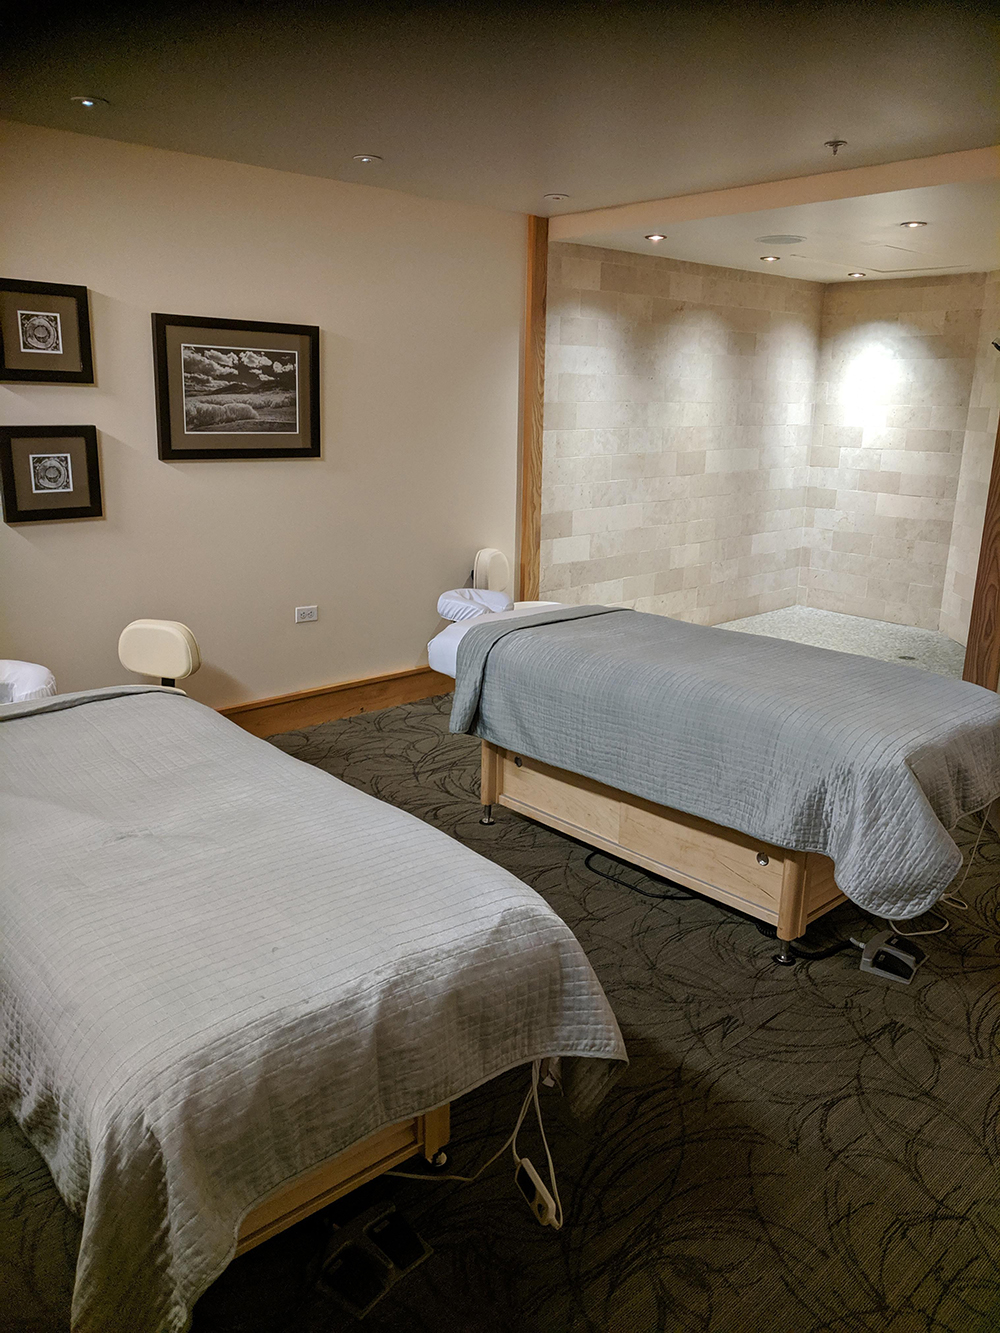 One of the couples treatment rooms.